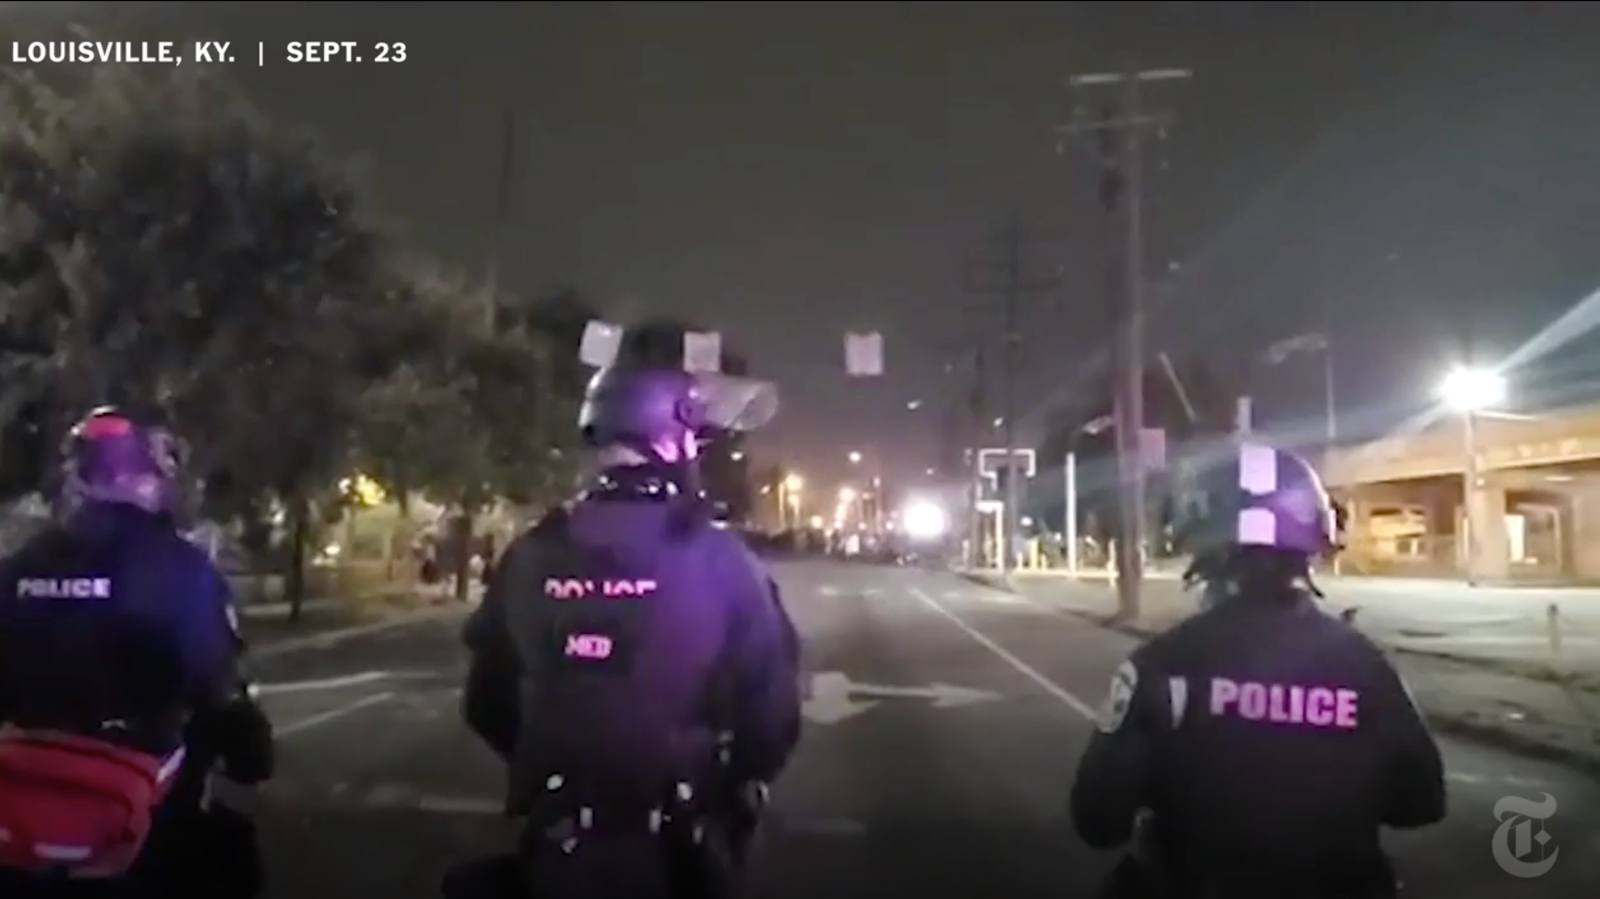 Videos Show Gunman Firing at Police During Louisville Protest